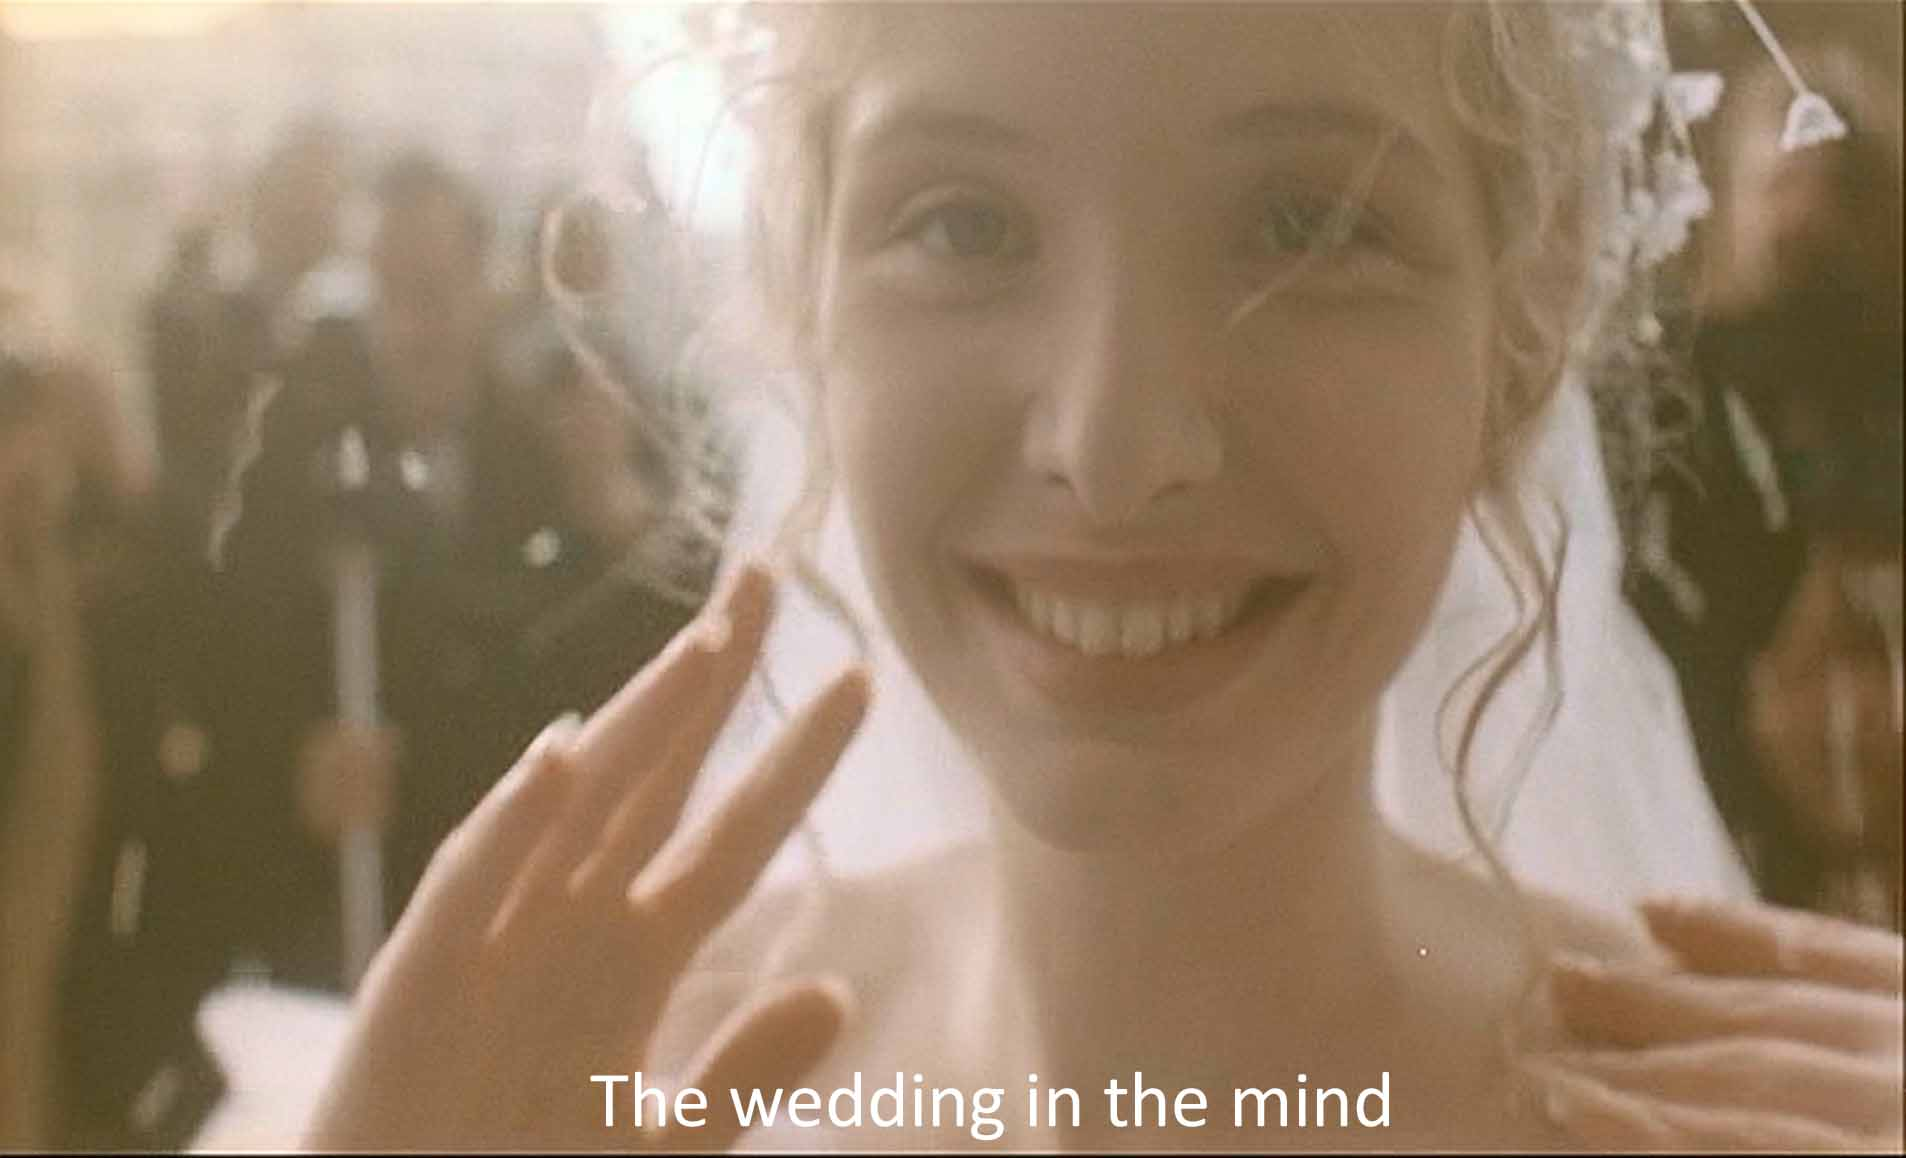 The wedding in the mind